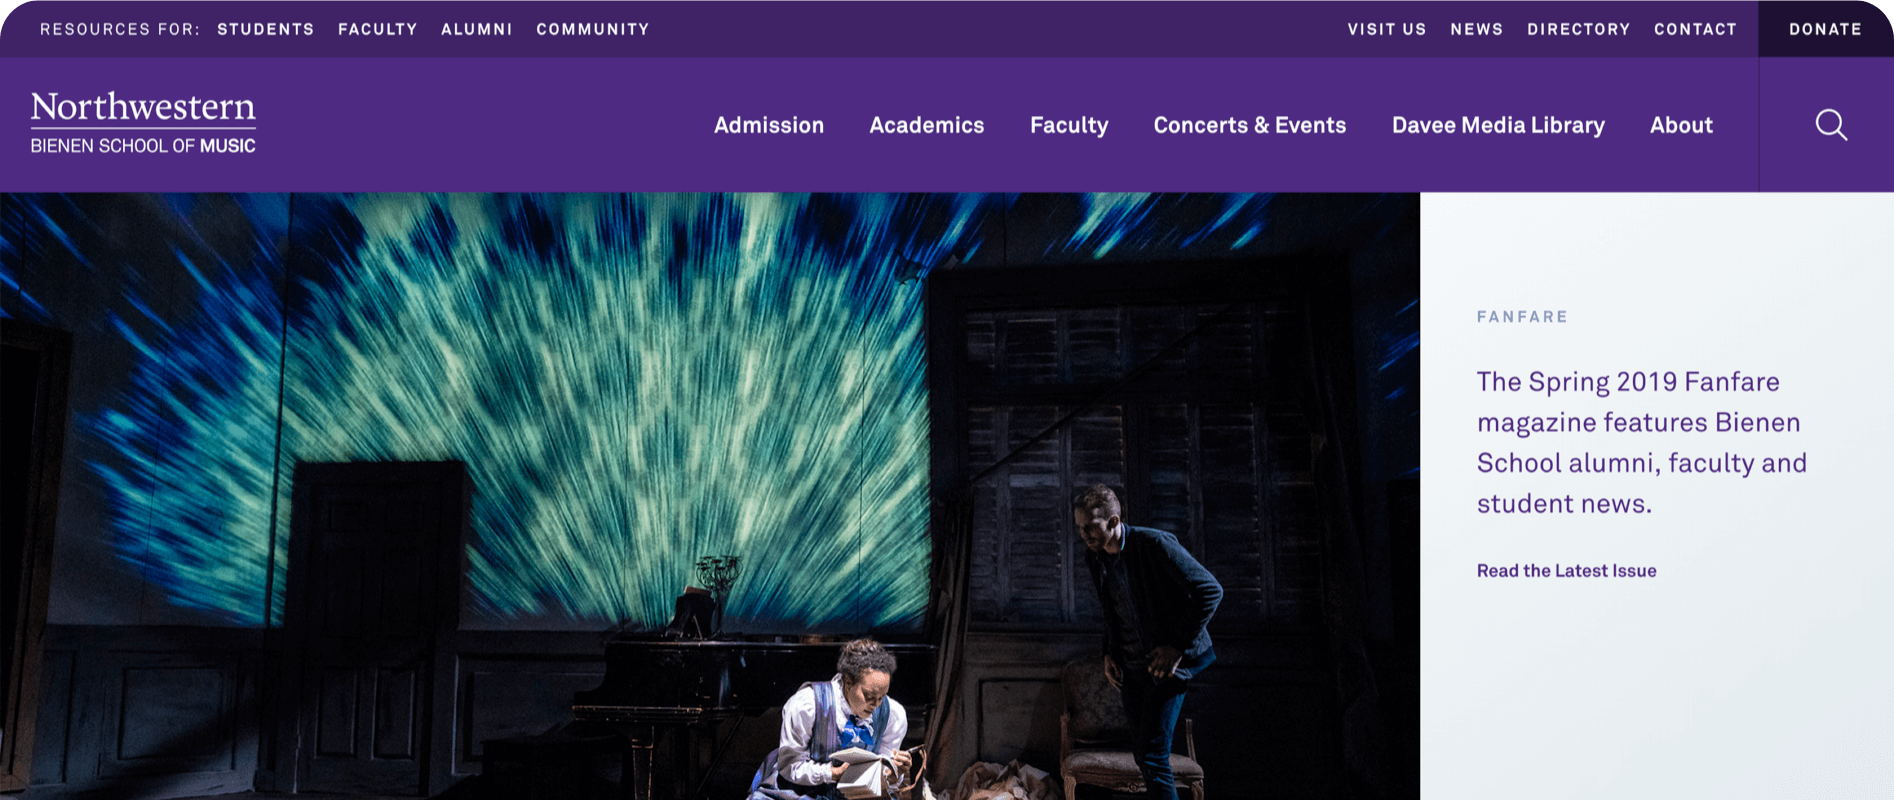 Northwestern Bienen School of Music new homepage first impression